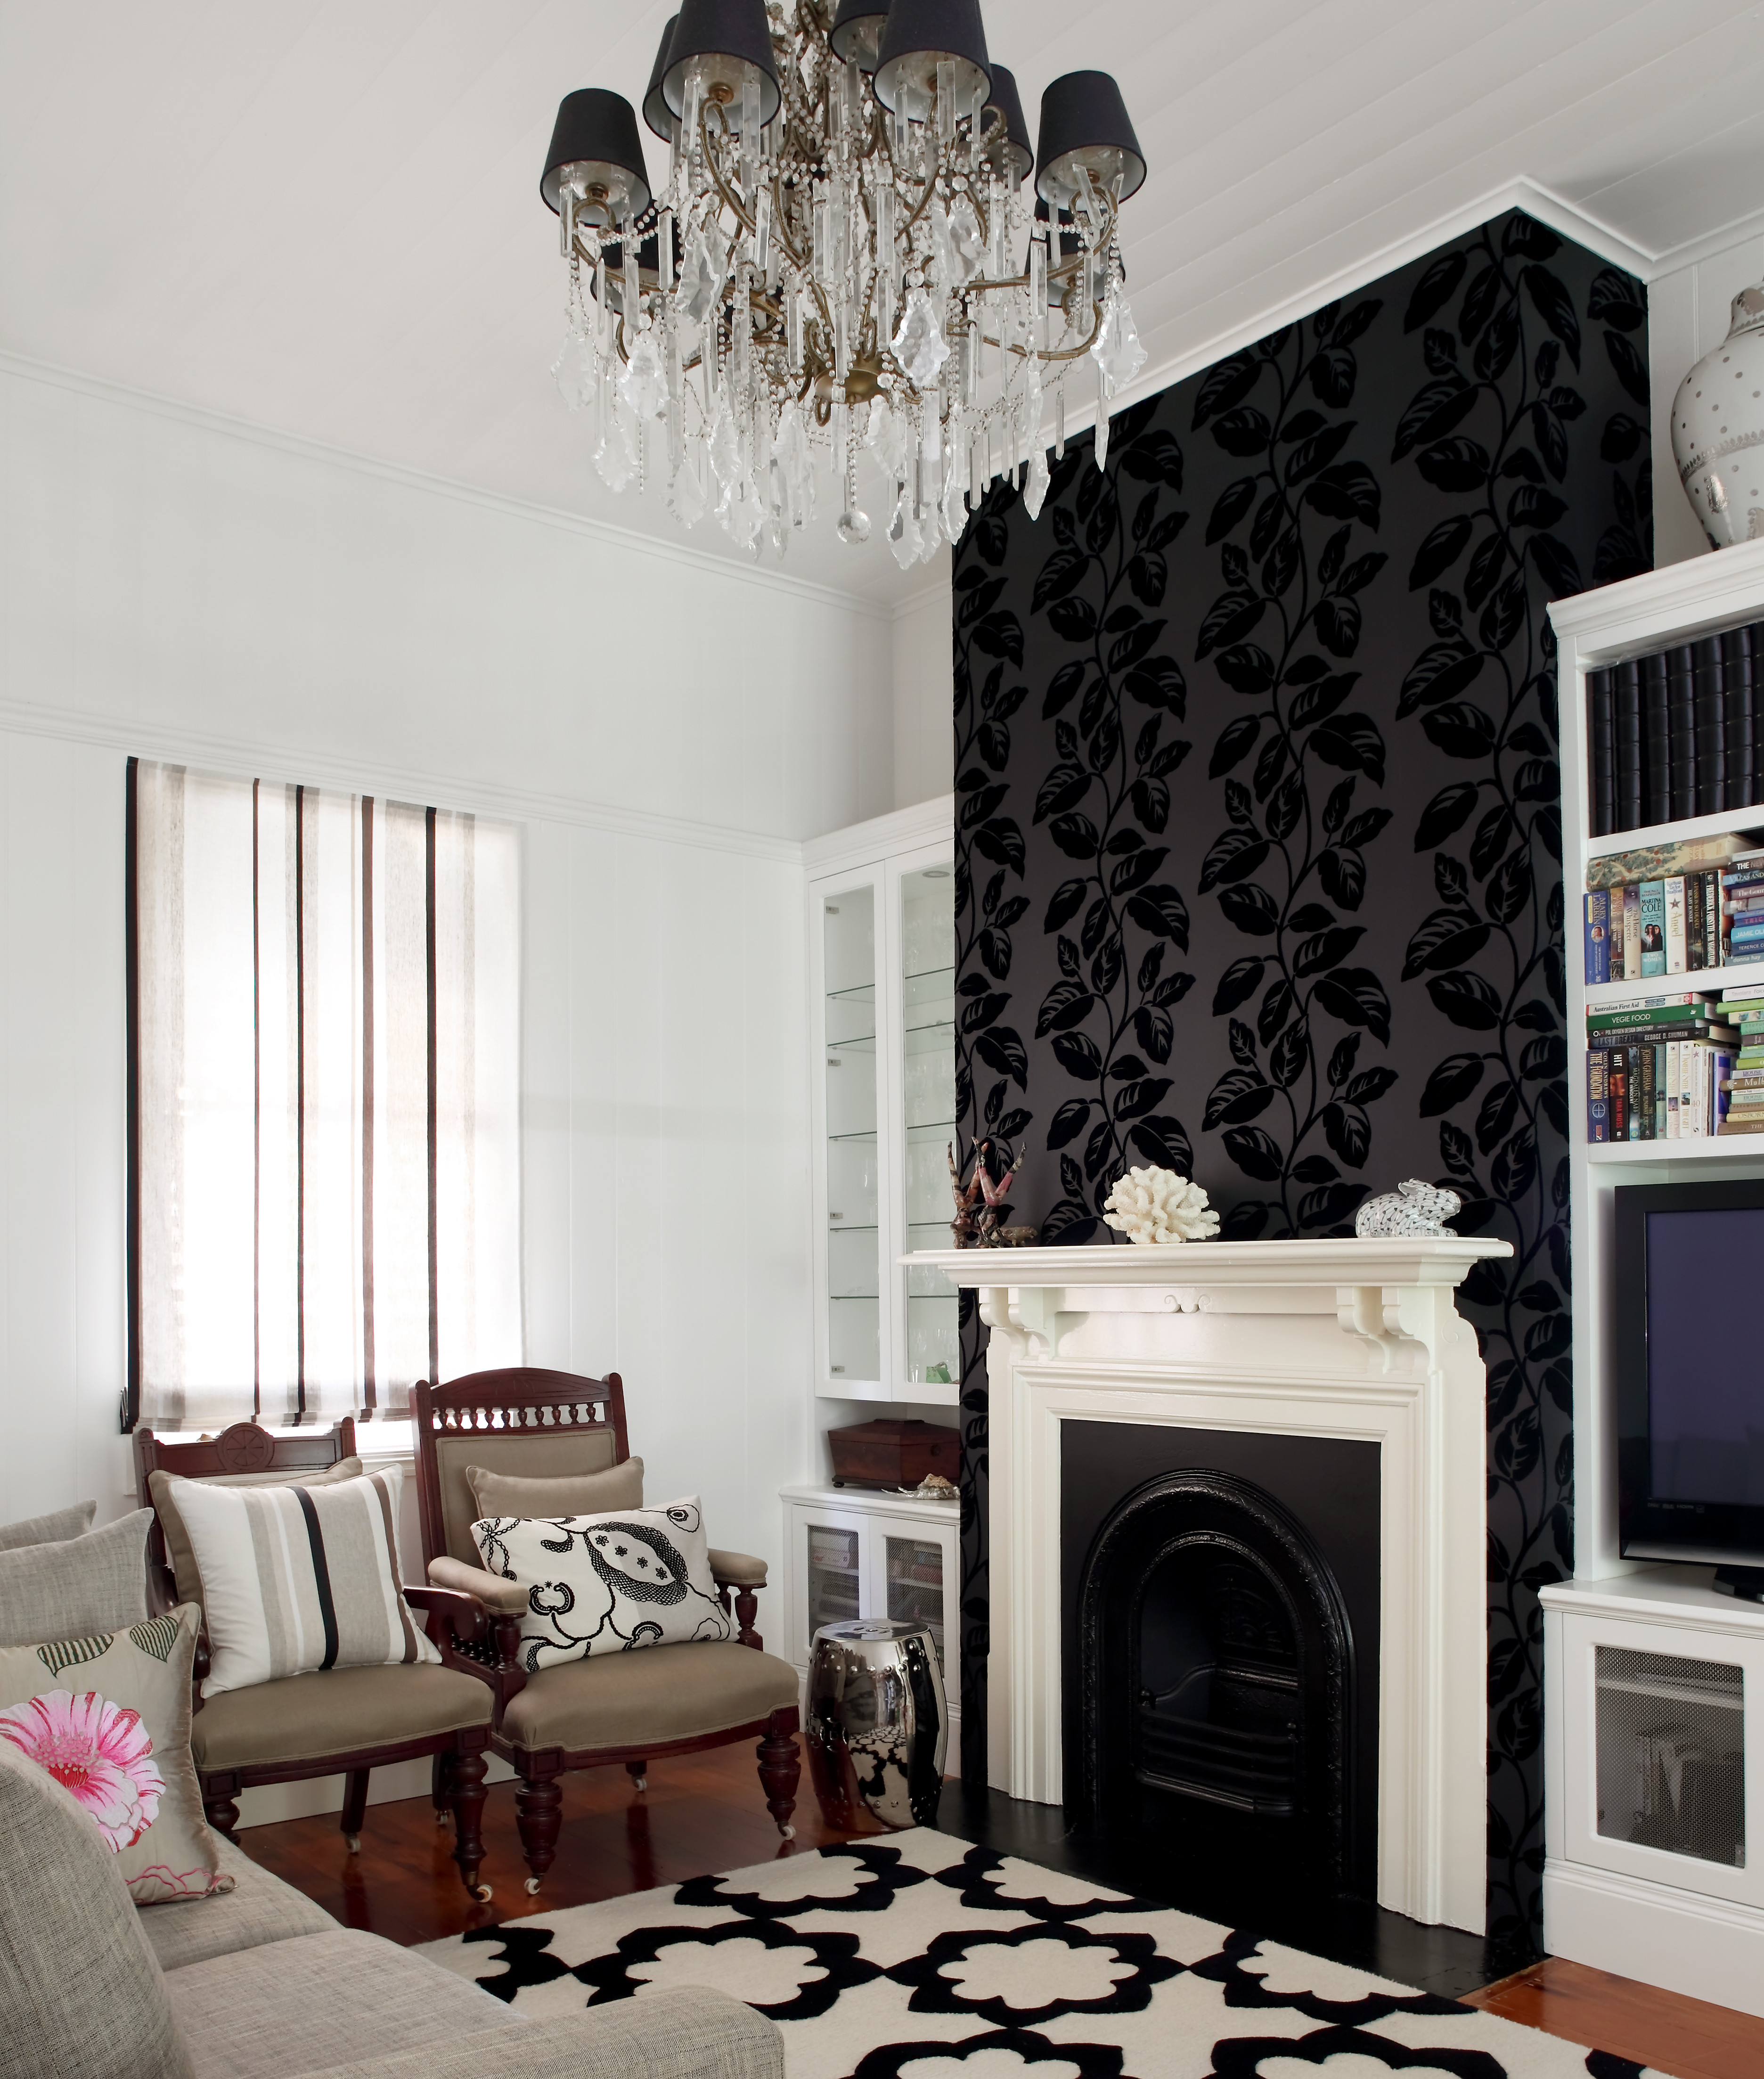 Best ideas about Living Room Wall . Save or Pin Tahn Scoon Living Now.